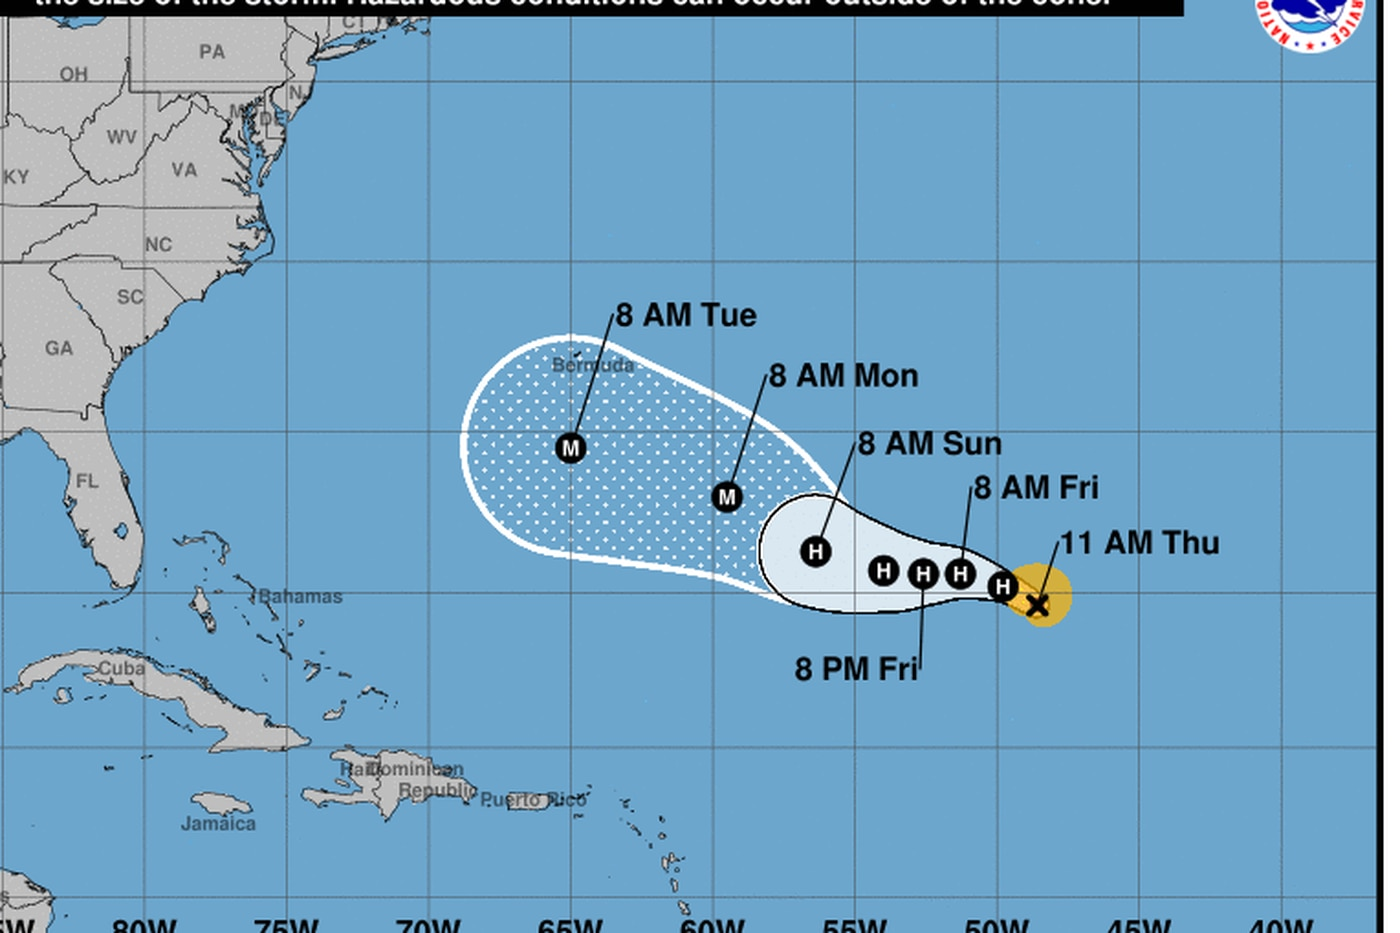 Local officials keep eye on Tropical Storm Florence